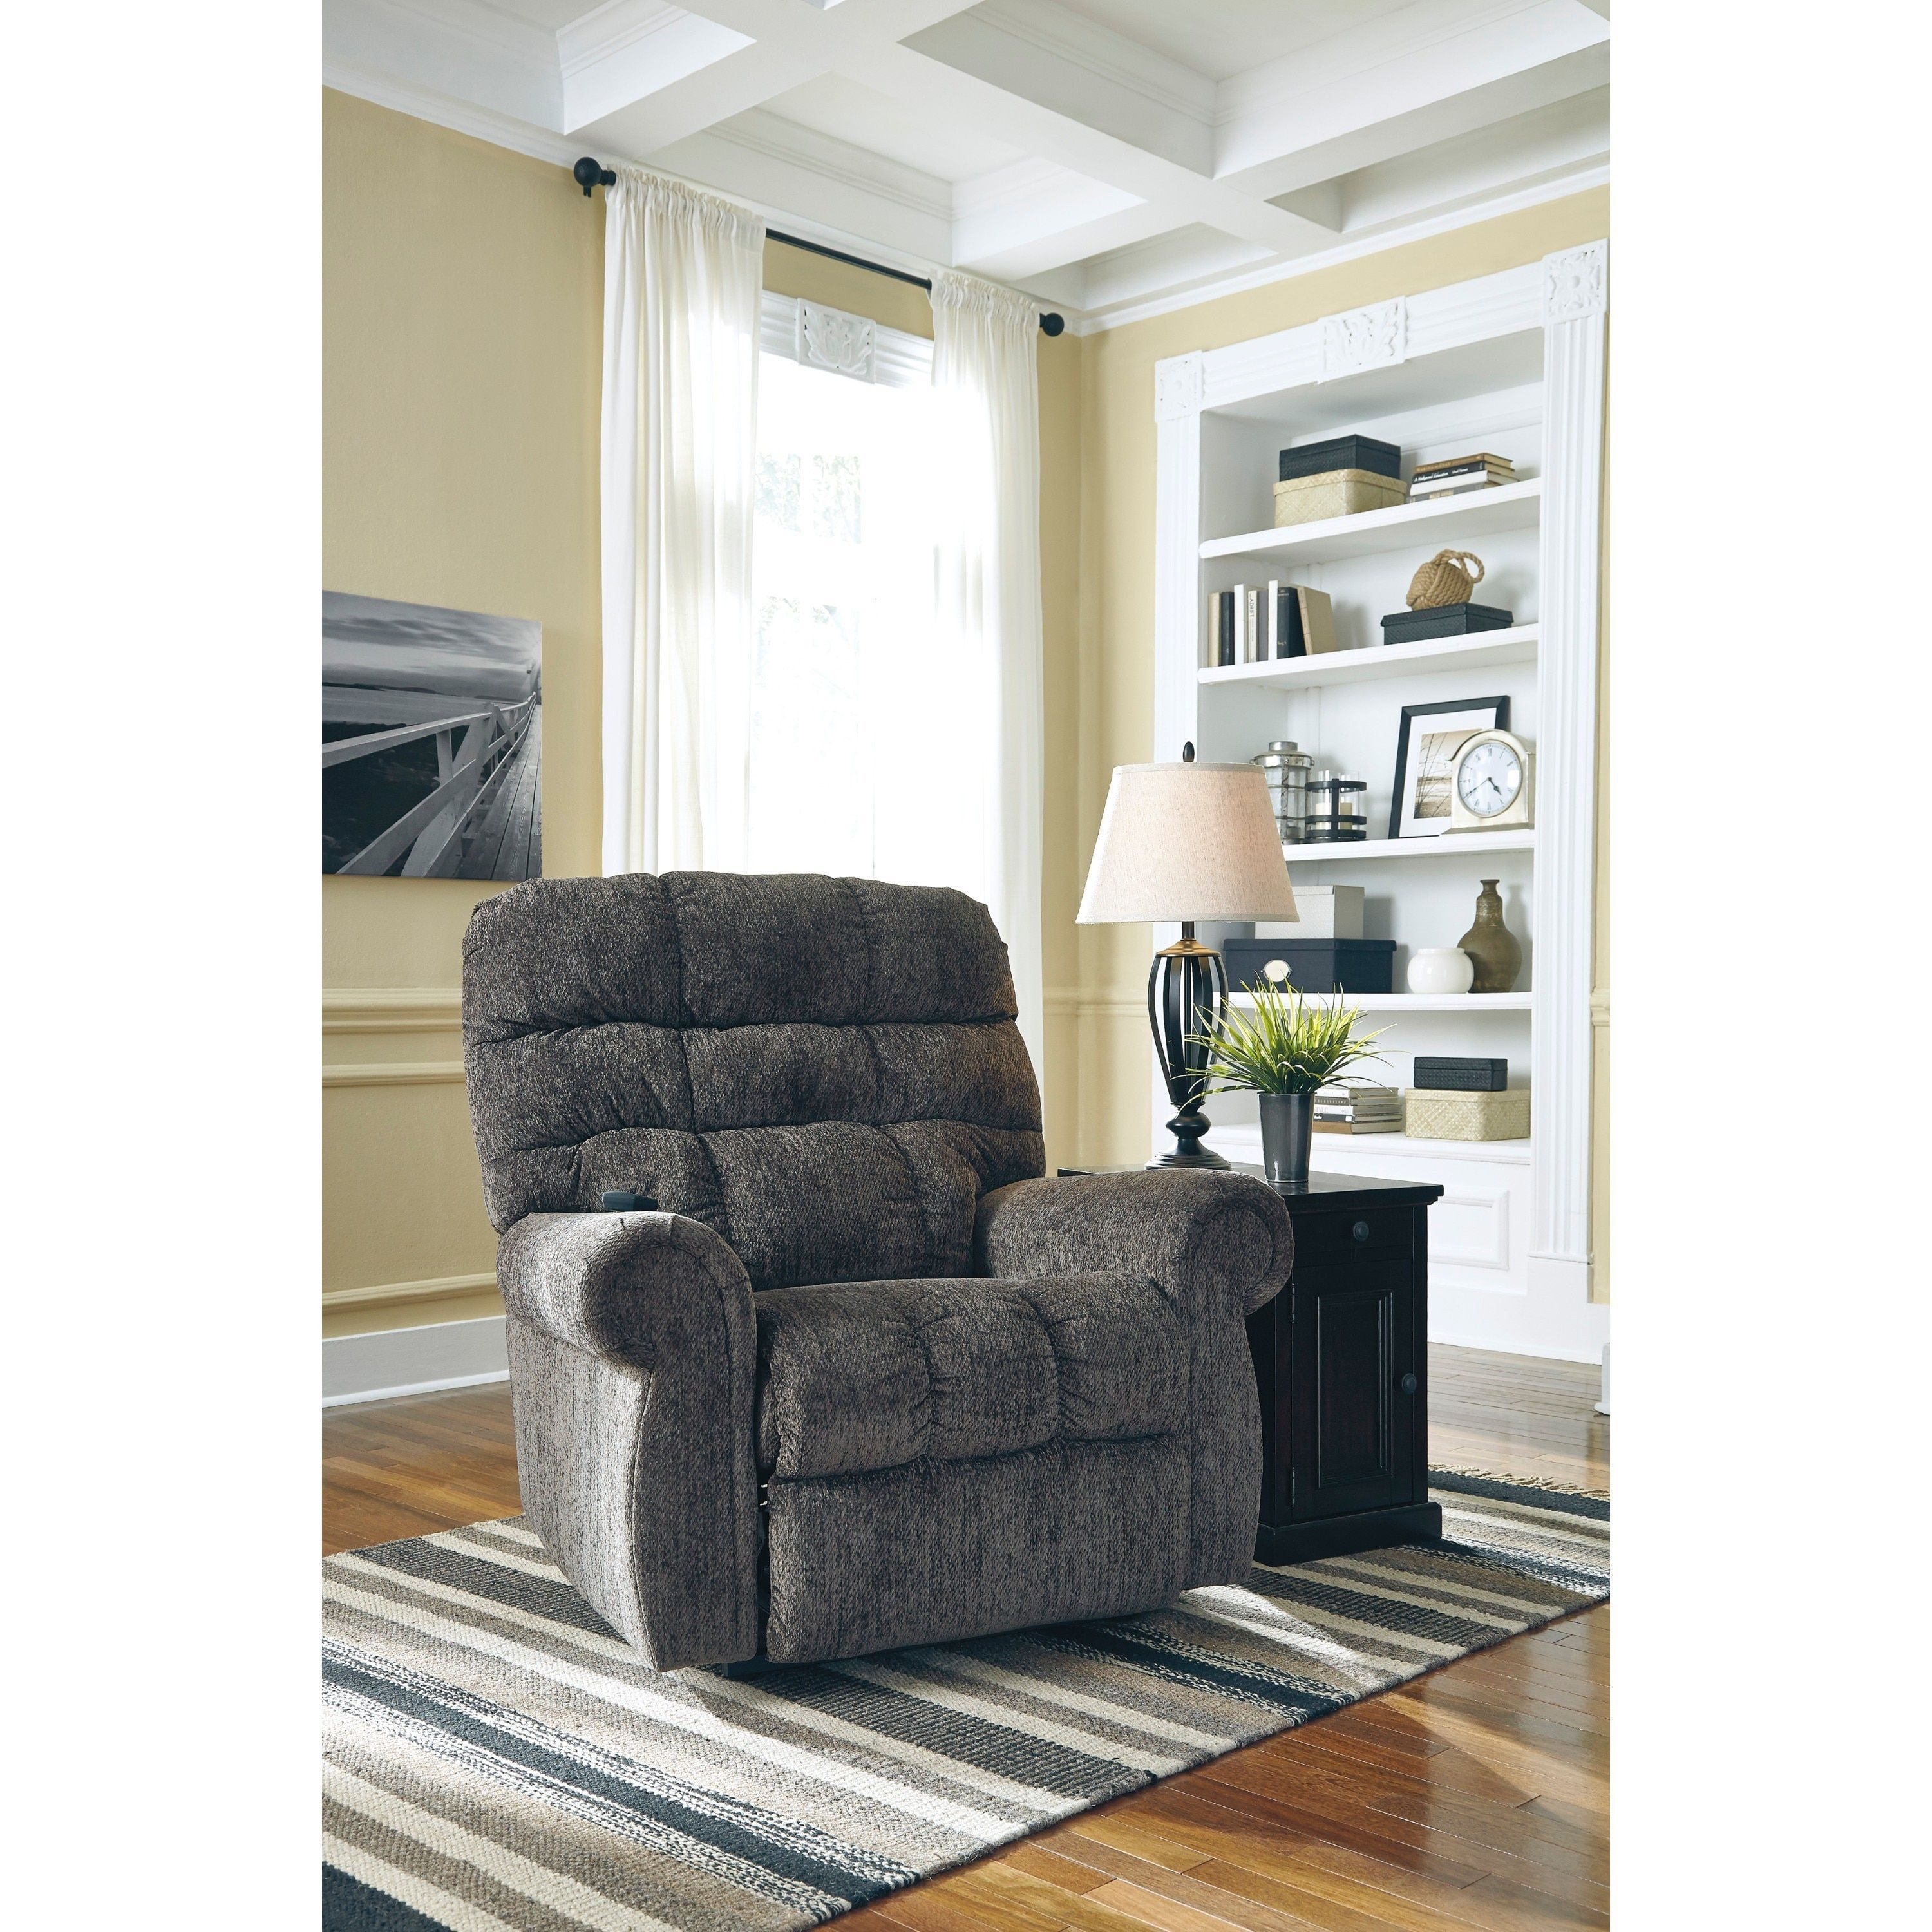 Signature Design By Ashley Ernestine Grey Power Lift Recliner (Power Lift  Recliner), Size